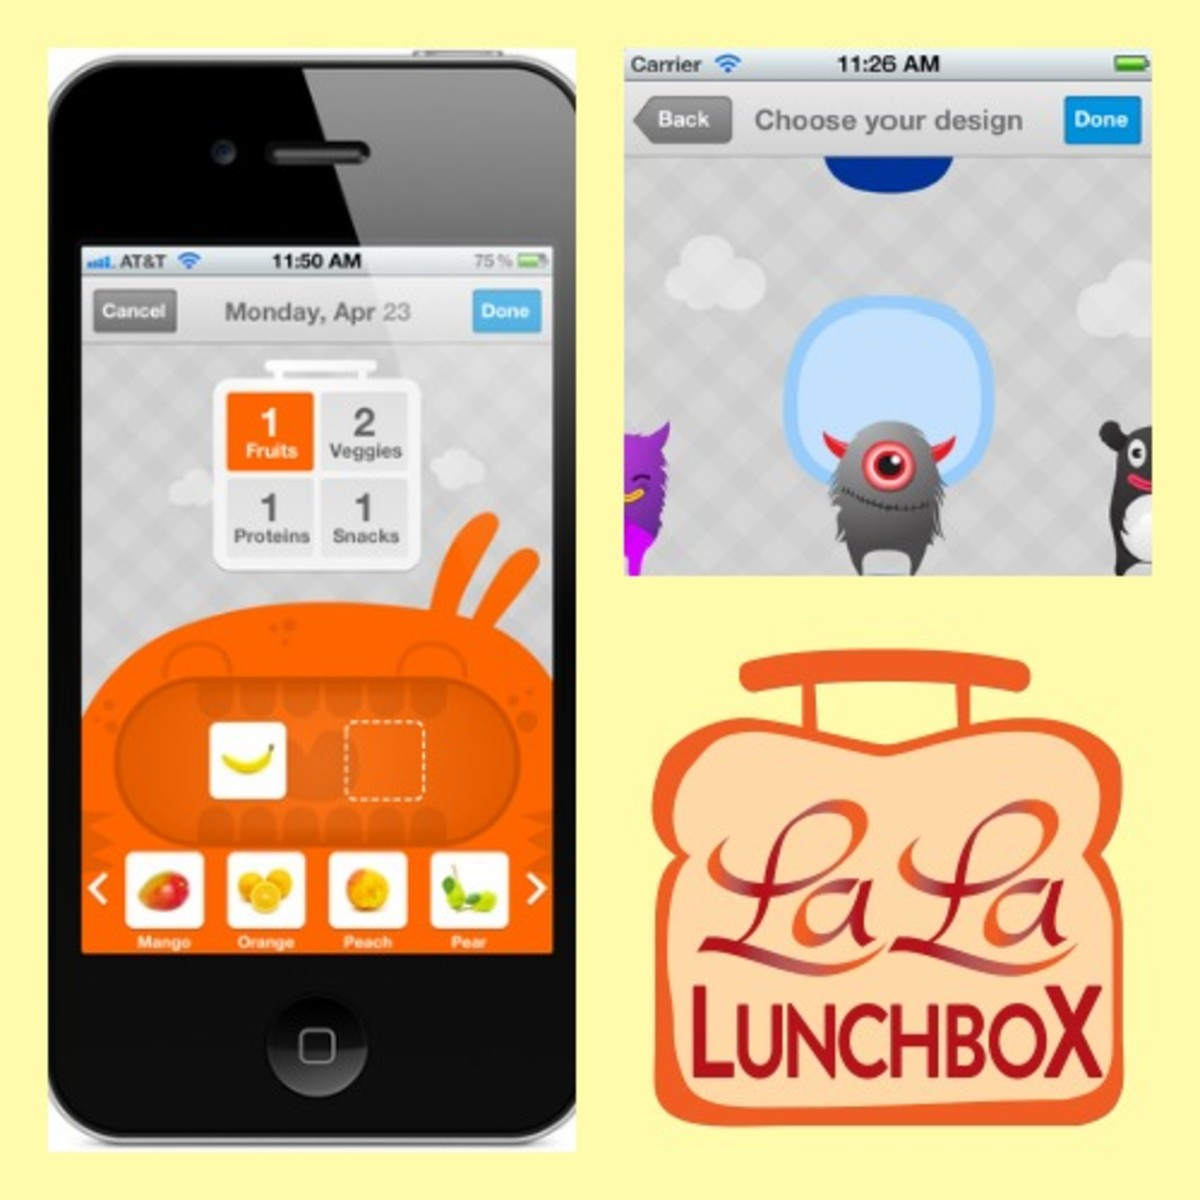 New La La Lunchbox App